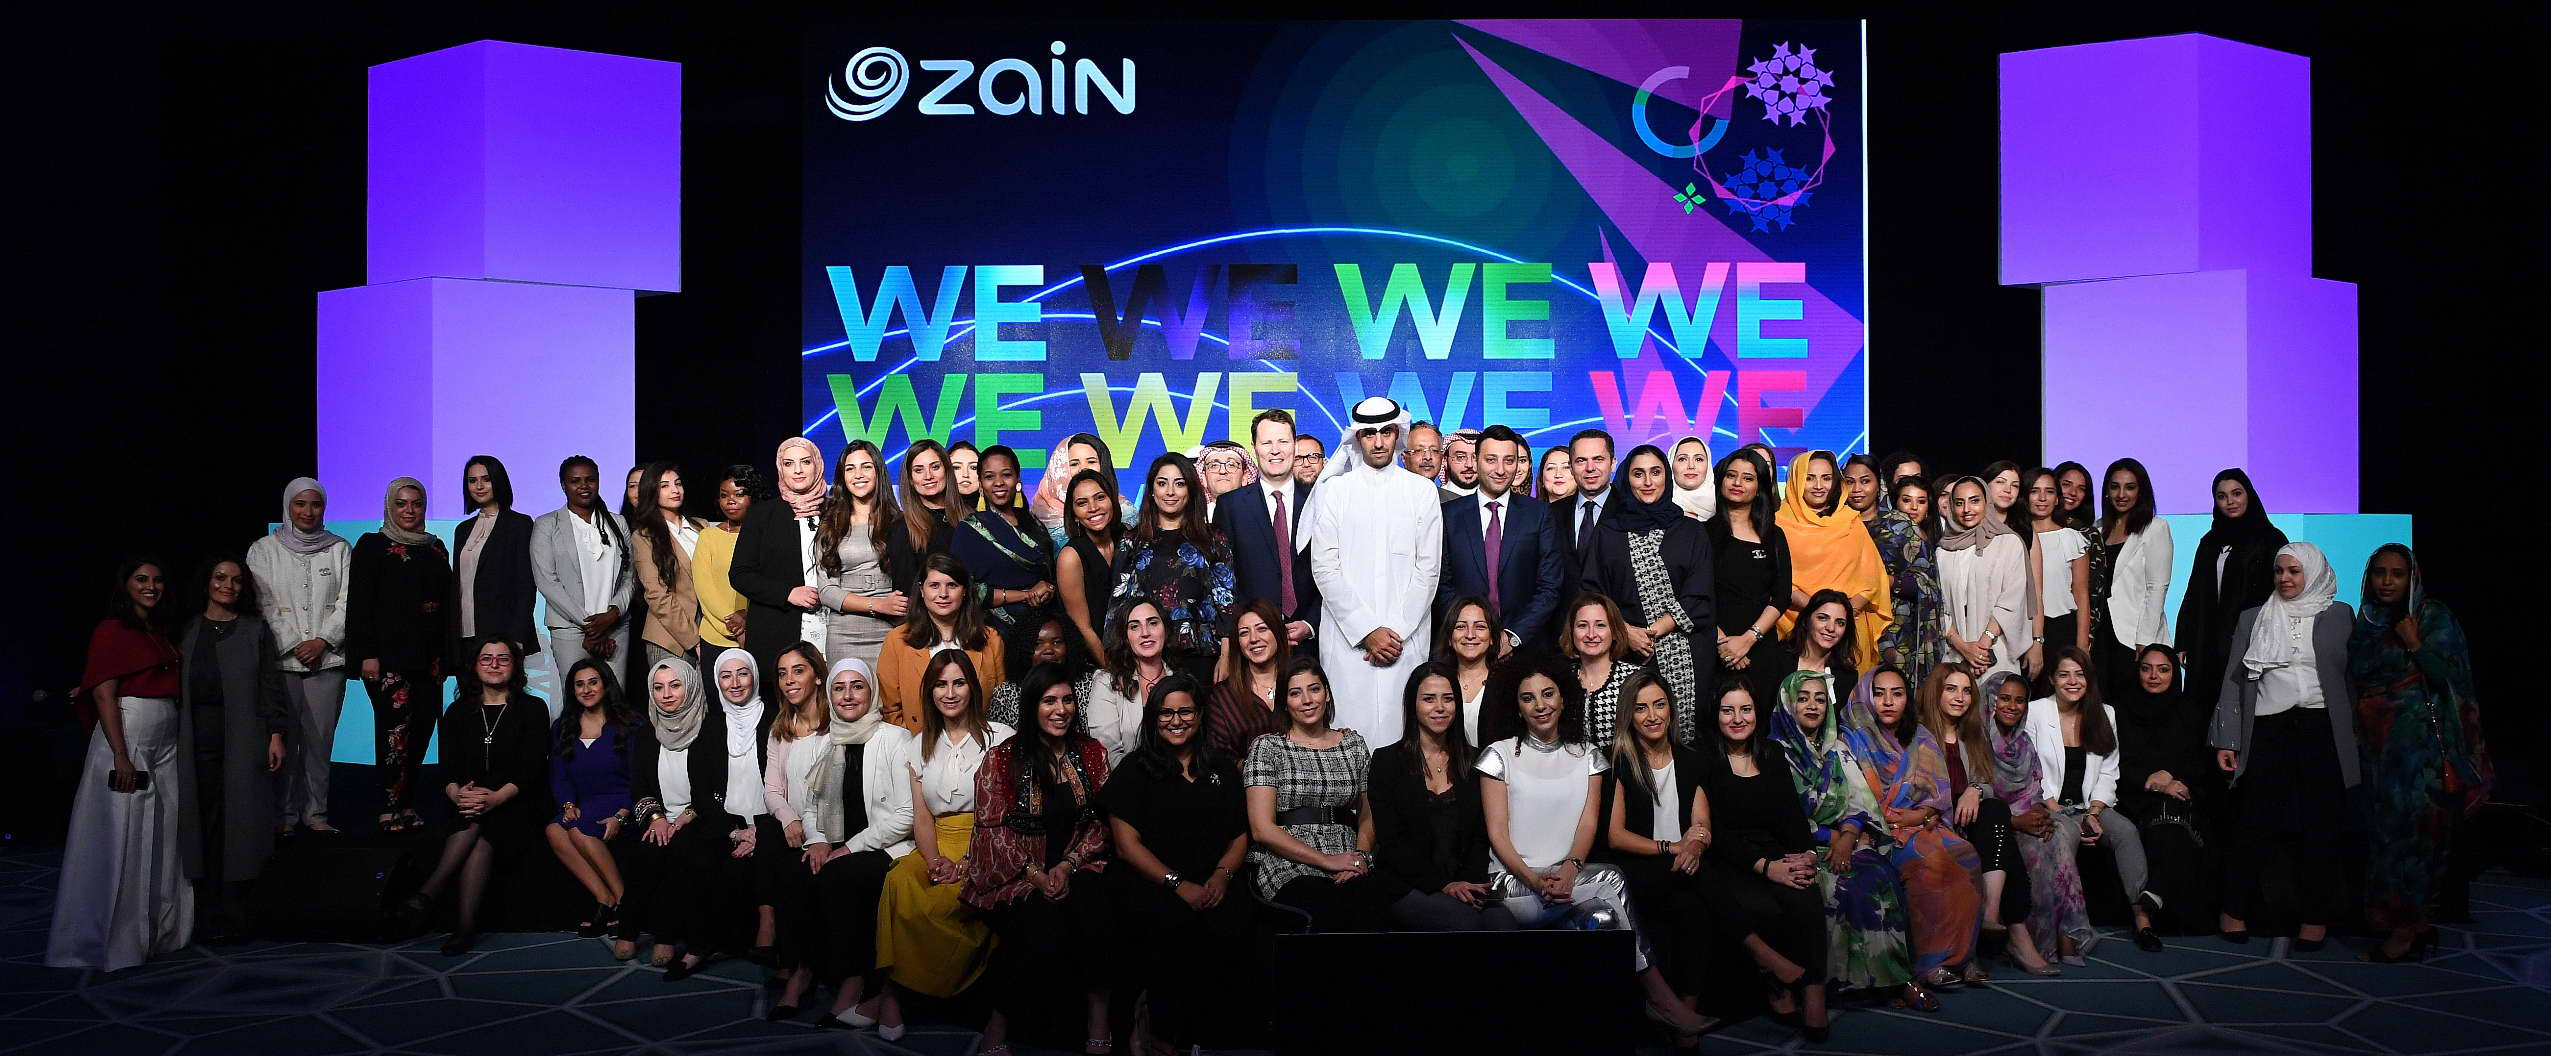 Zain Group WE Forum 2018 1.jpg